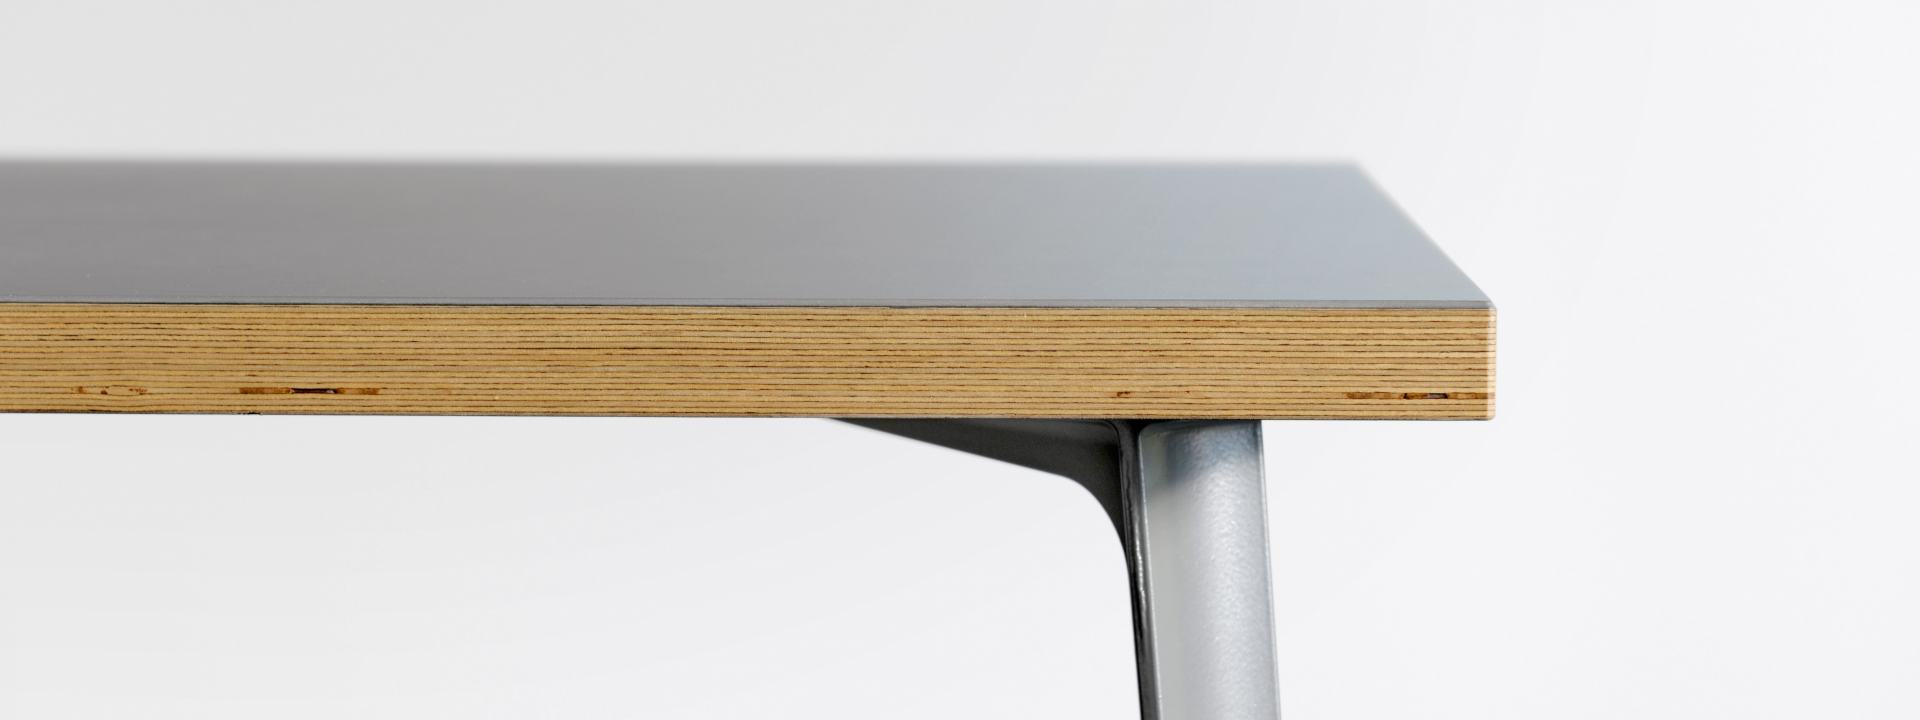 Canteen Legs, Tables & Trestles, Table bases, Table base, Table legs